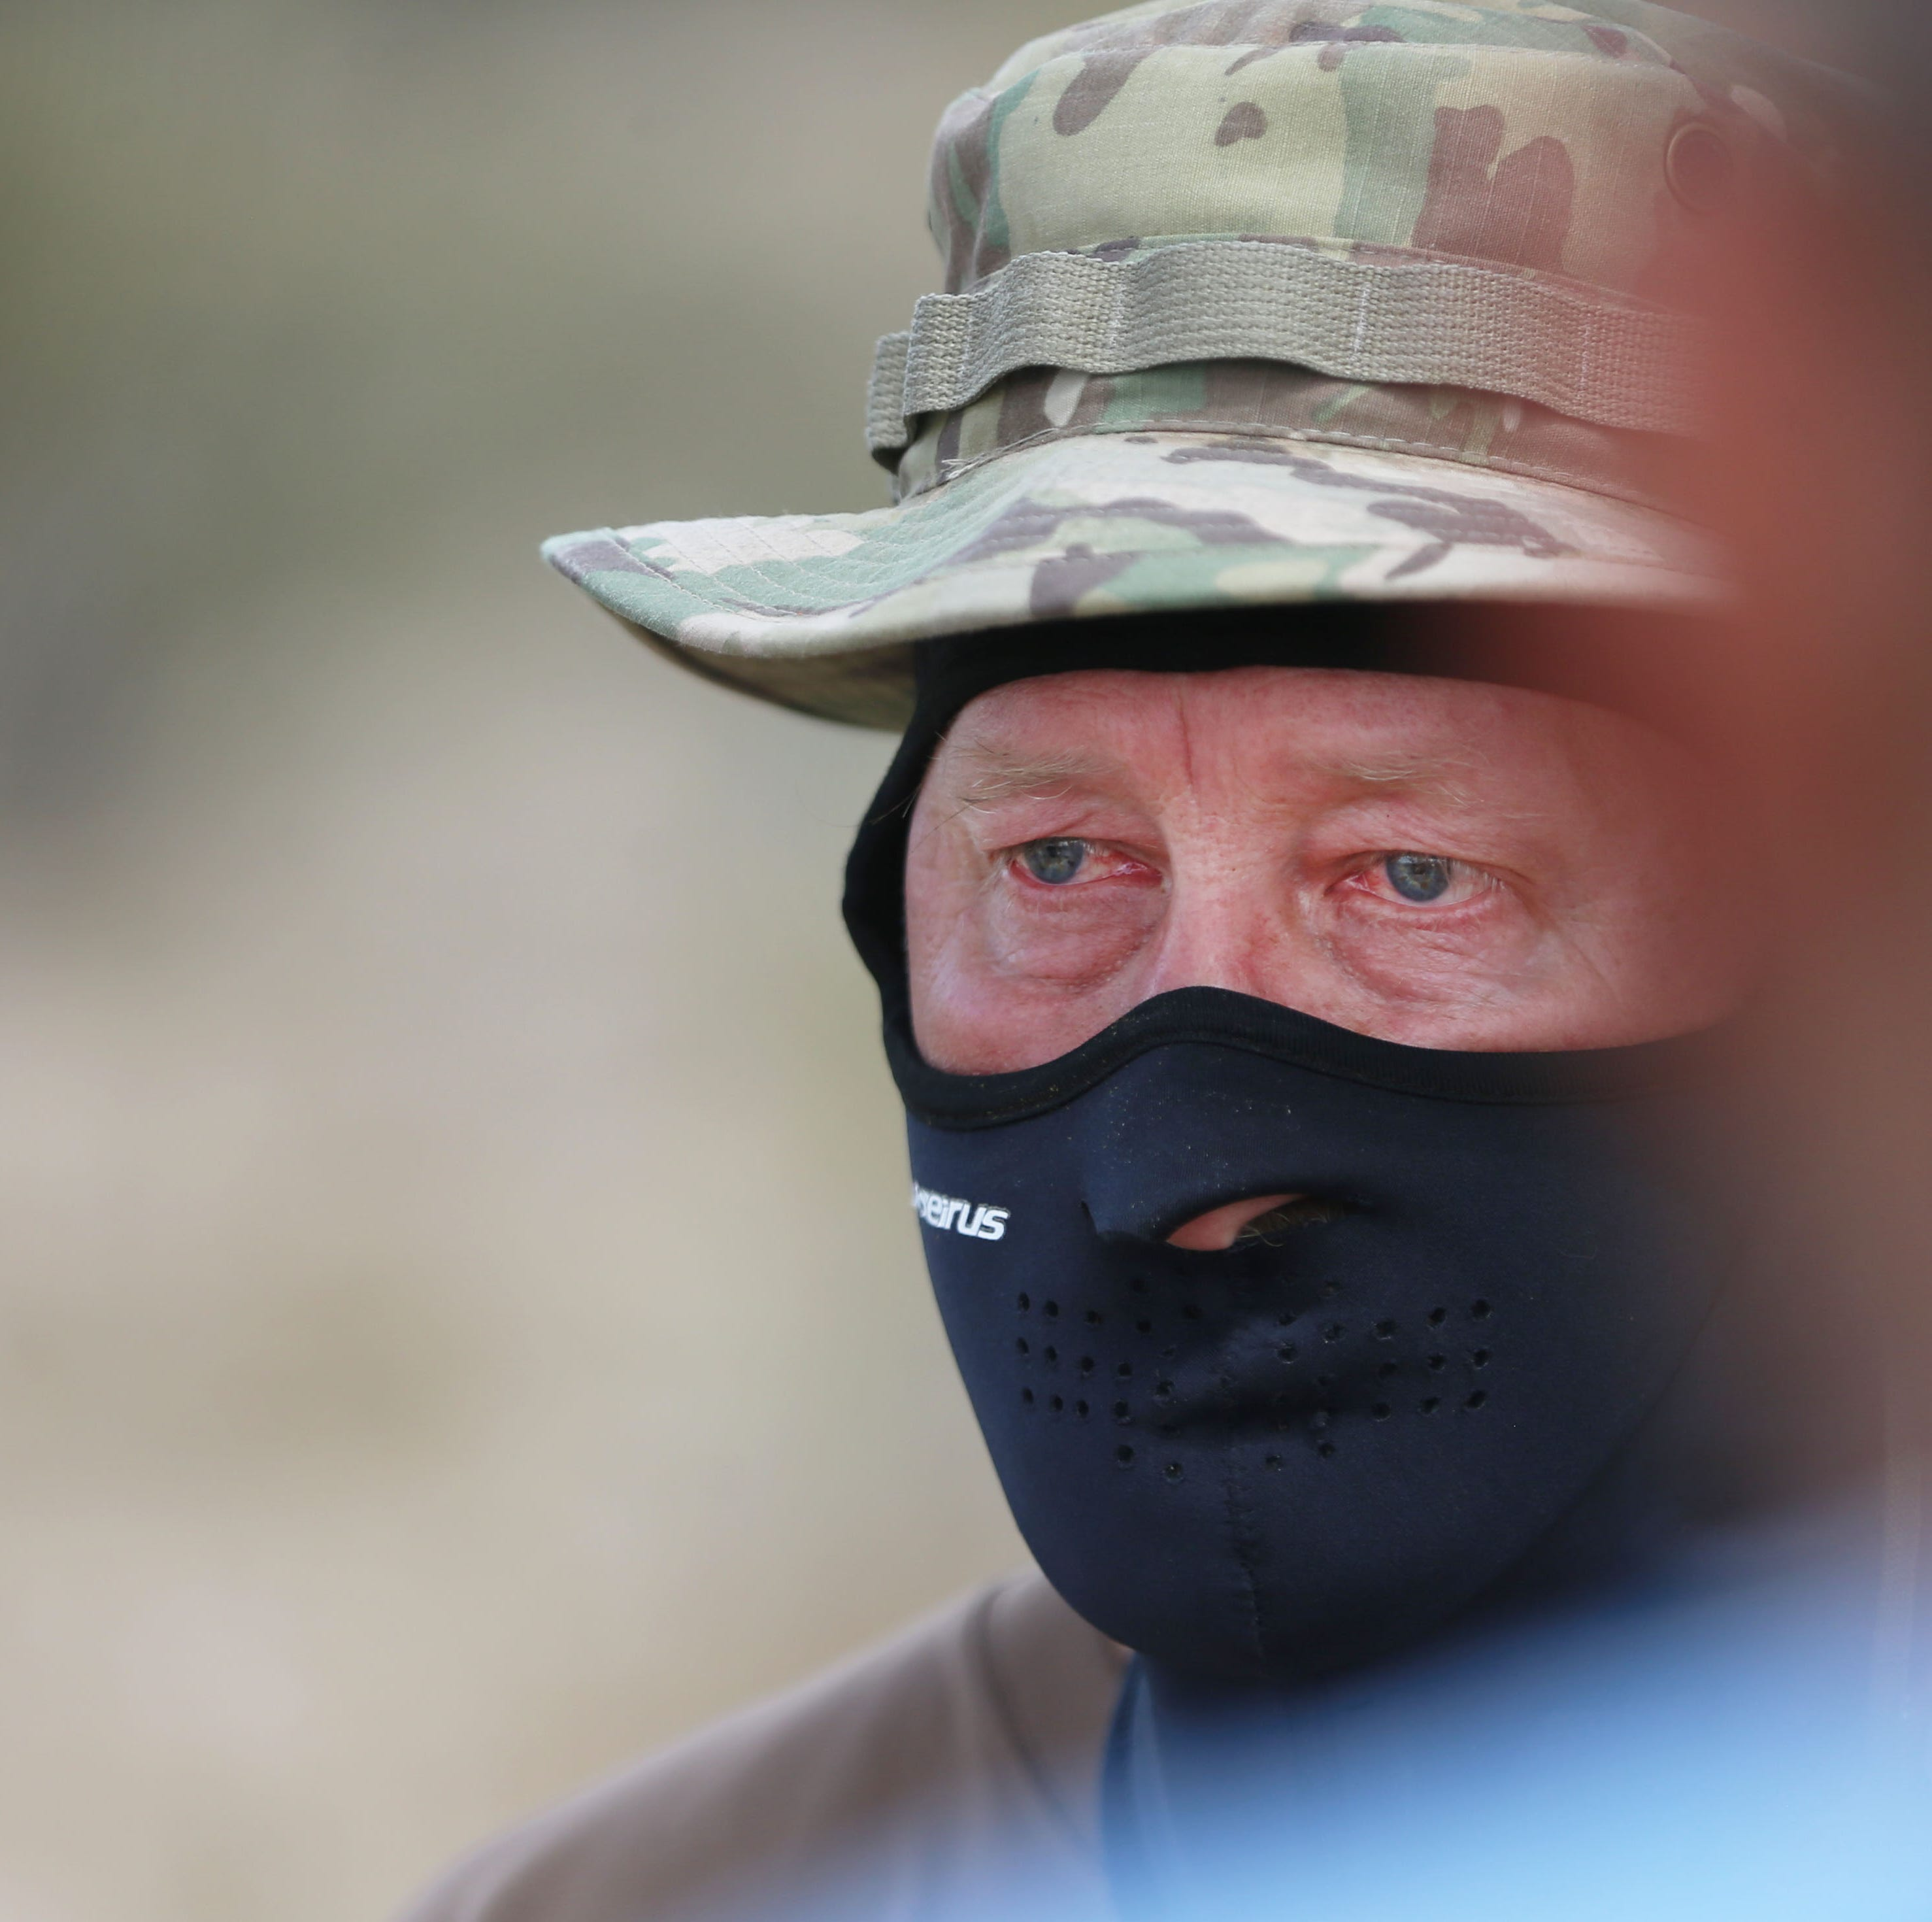 NM militia evicted from border campsite early; 'This is how they repay me,' vet cries